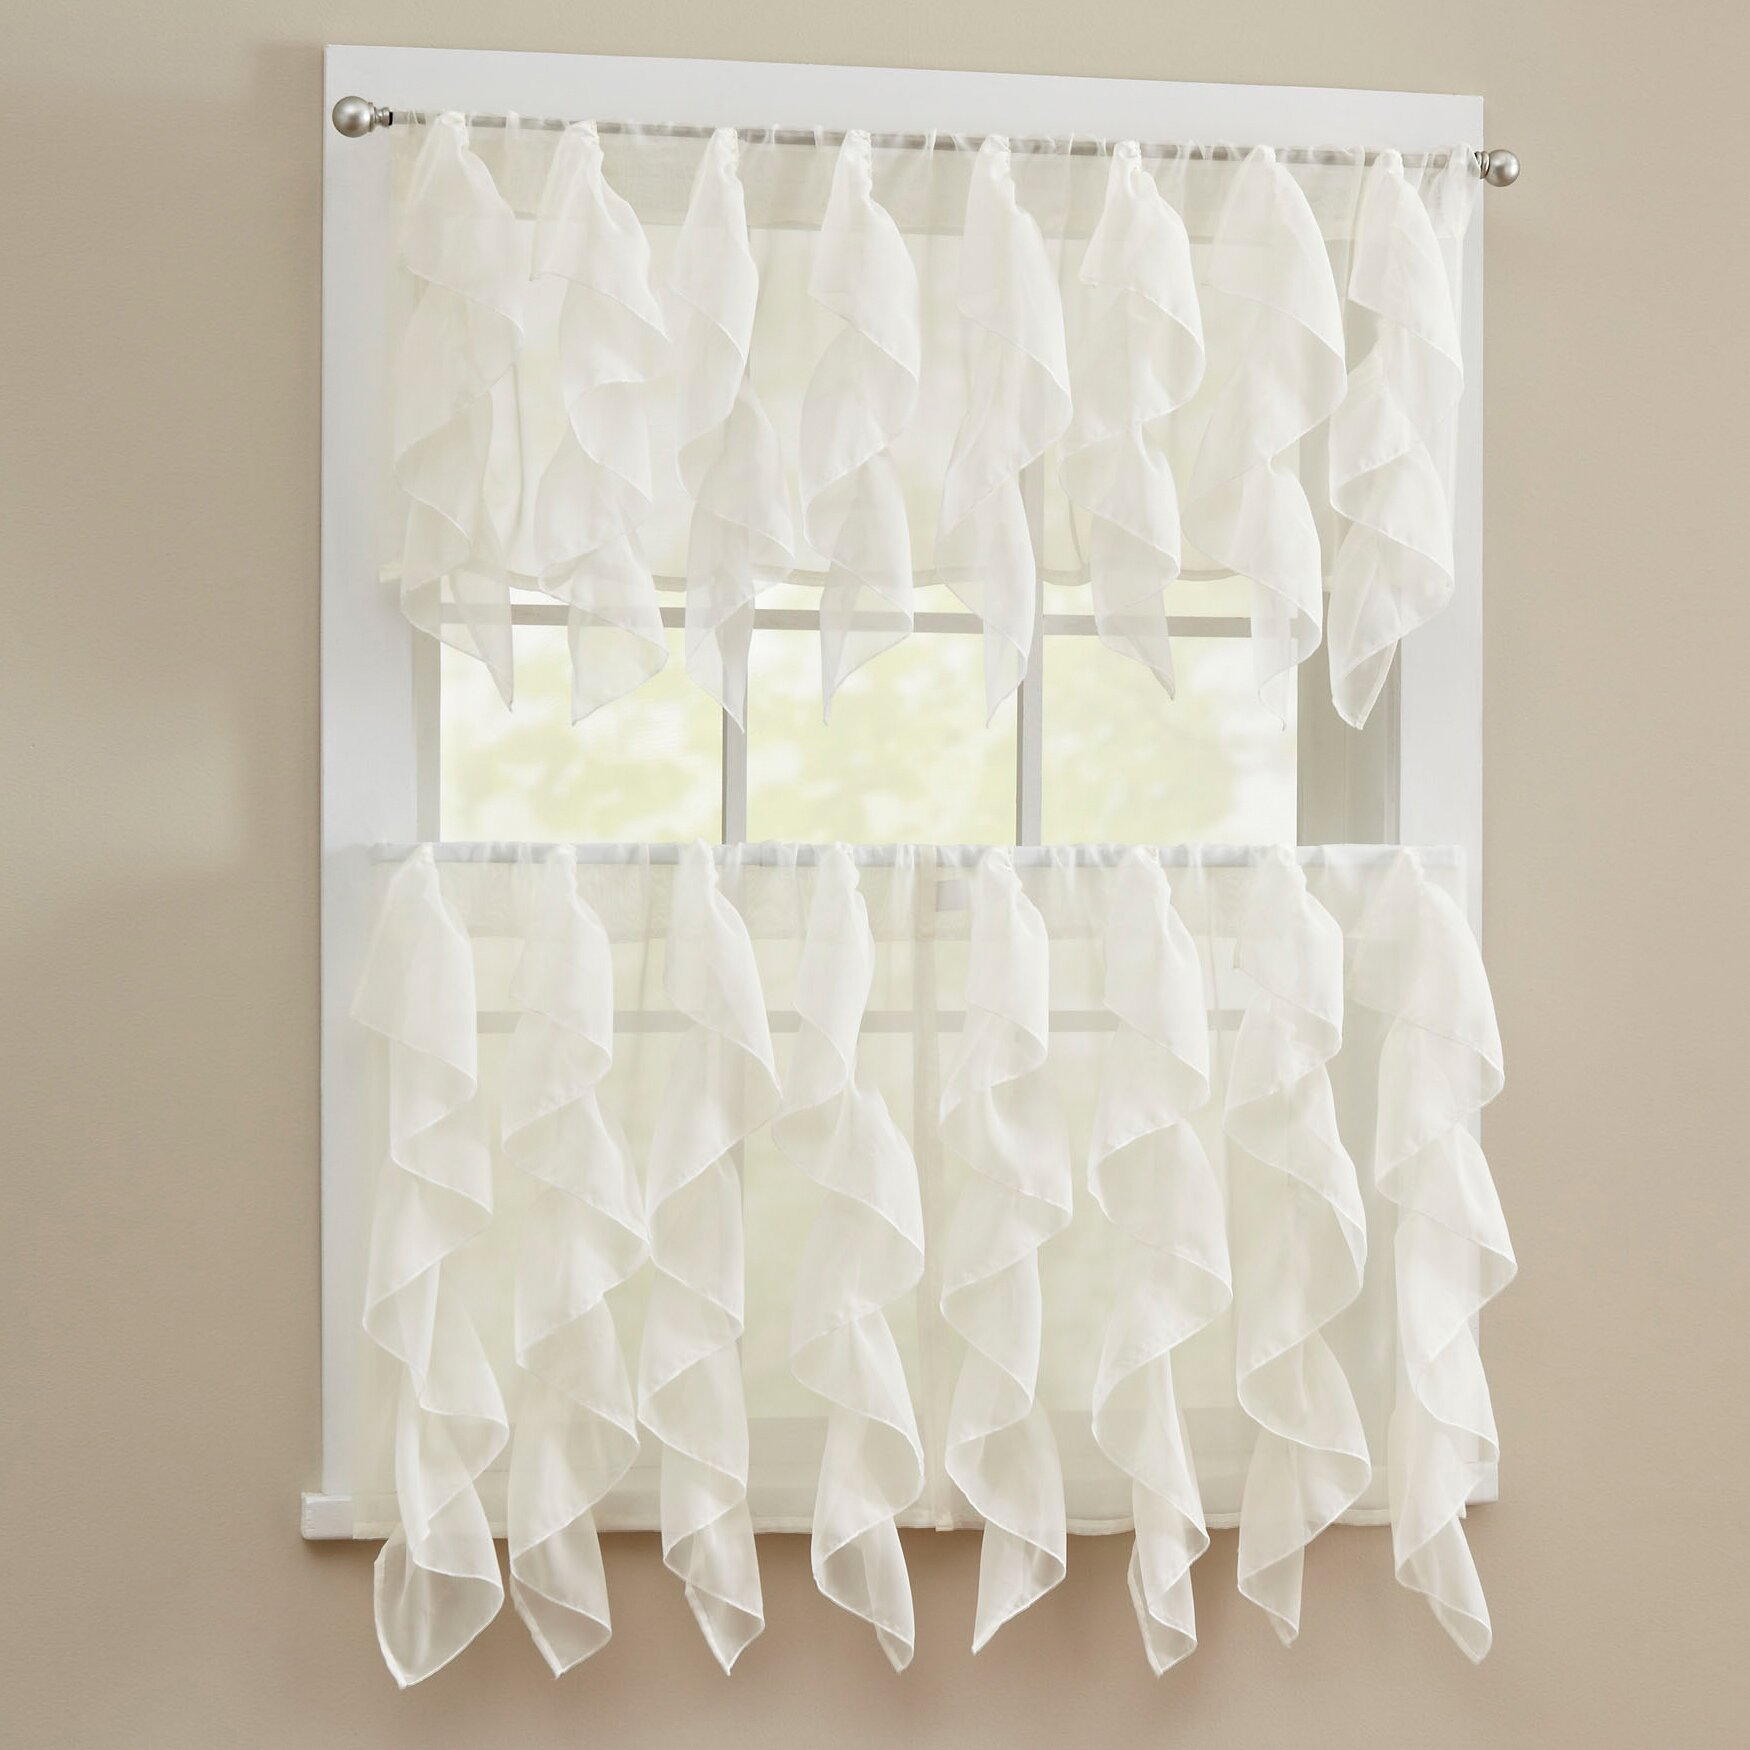 Elegant Kitchen Curtains Valances: Sweet Home Collection Elegant Sheer Voile Vertical Ruffle